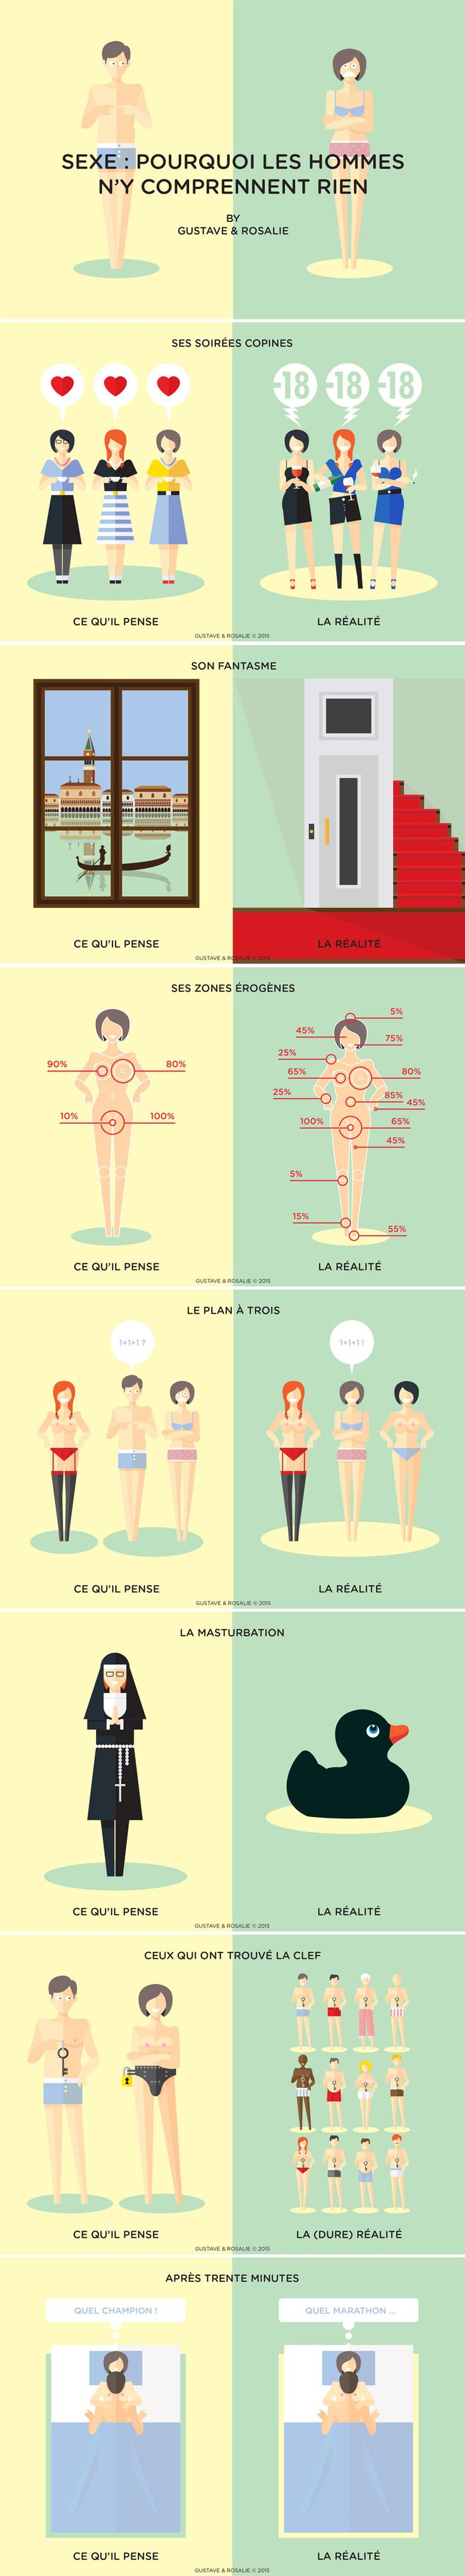 [#infographie] Sexe : pourquoi les hommes n′y comprennent rien  by Gustave & Rosalie